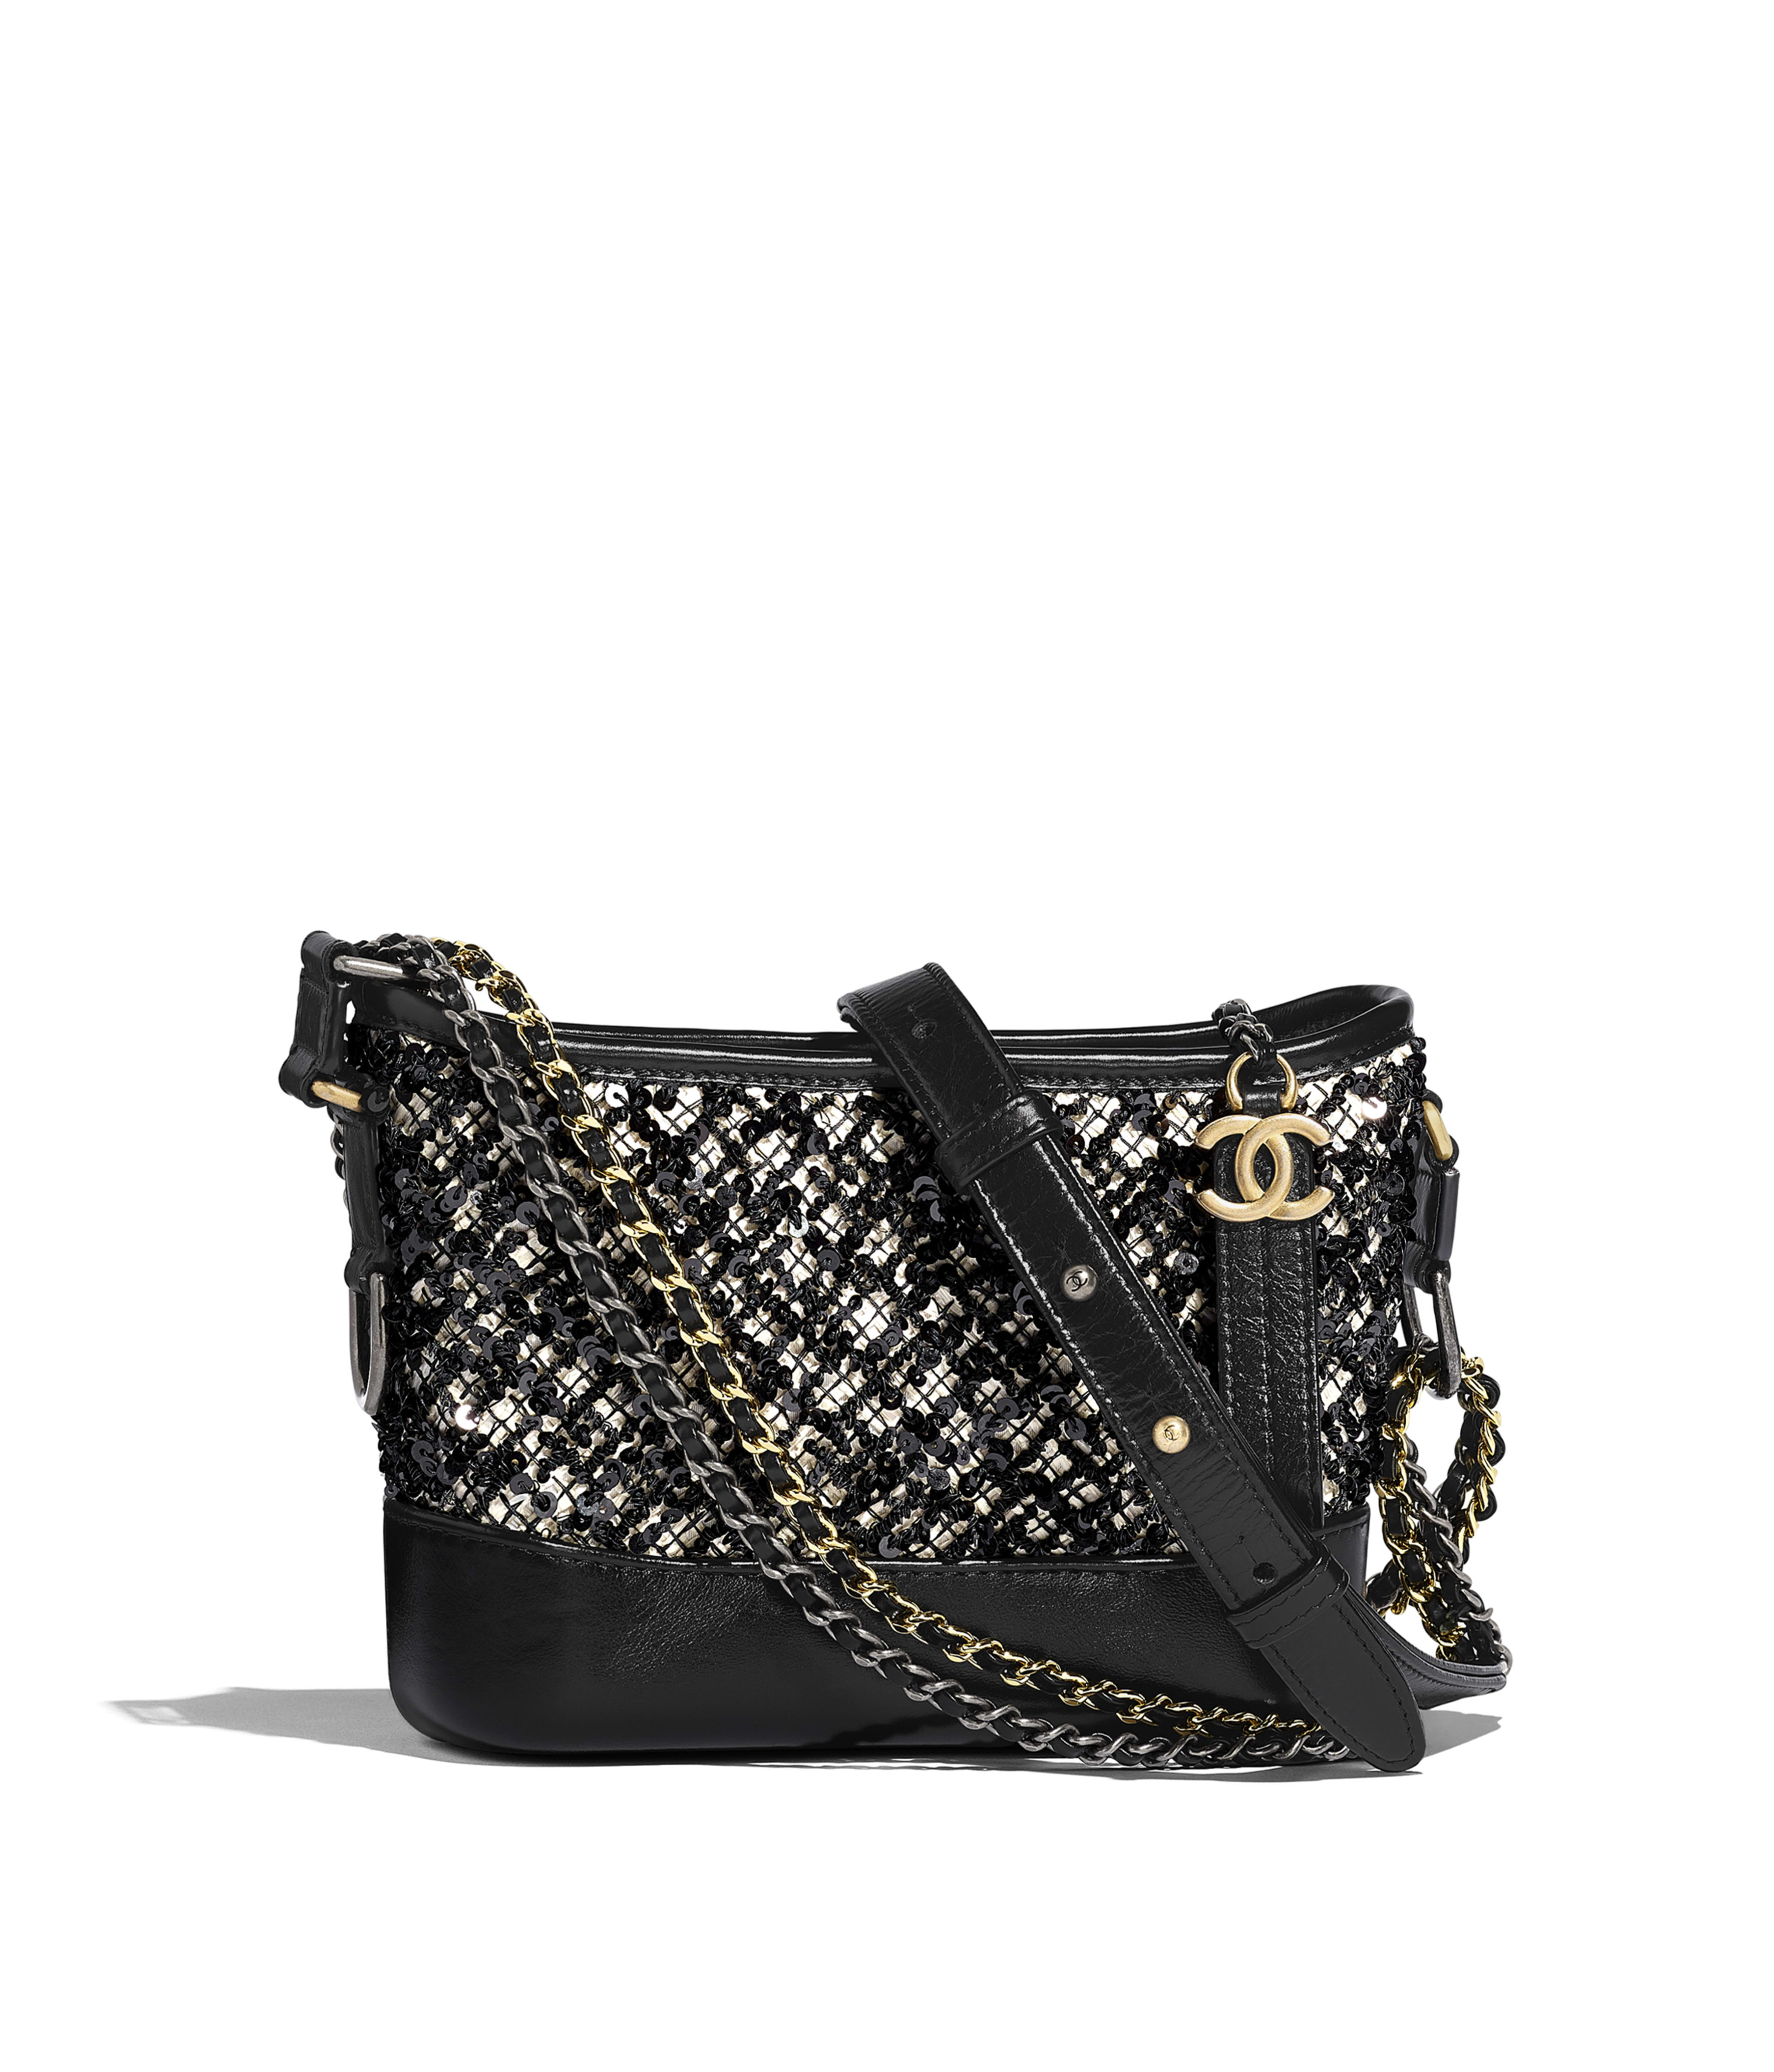 7127489230 CHANEL S GABRIELLE Small Hobo Bag Sequins